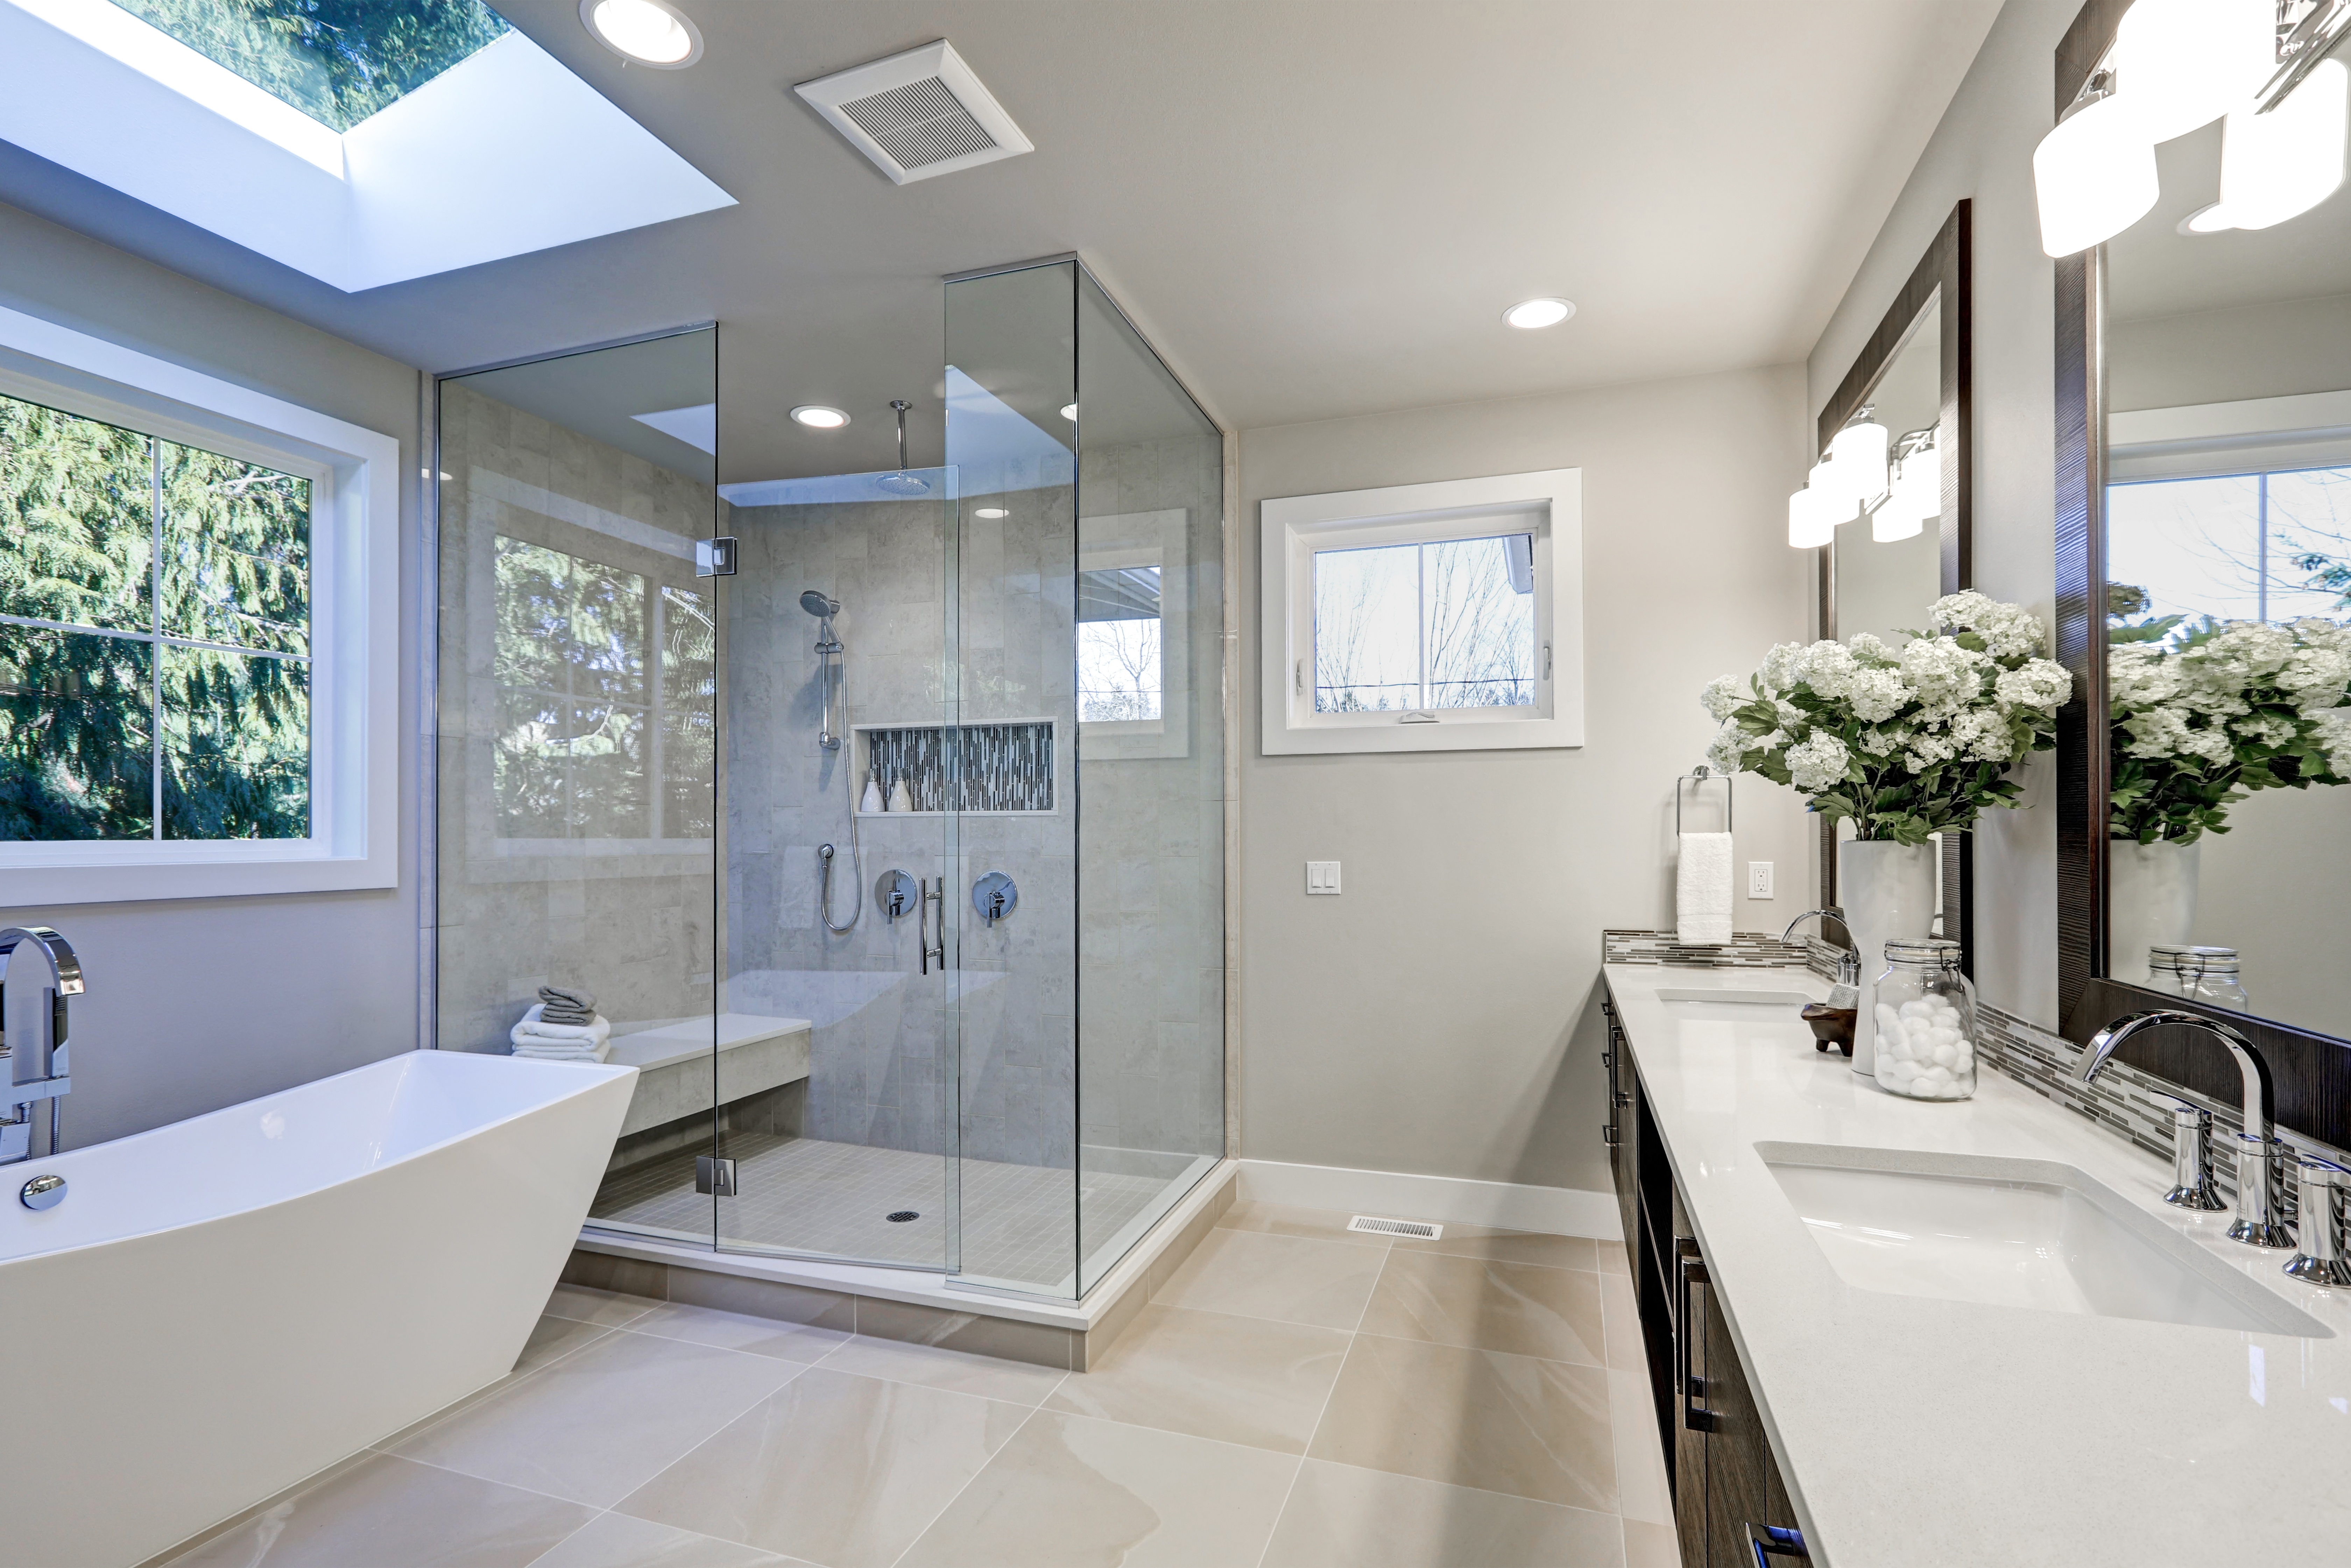 This beautiful bathroom includes a bathroom exhaust fan and windows.